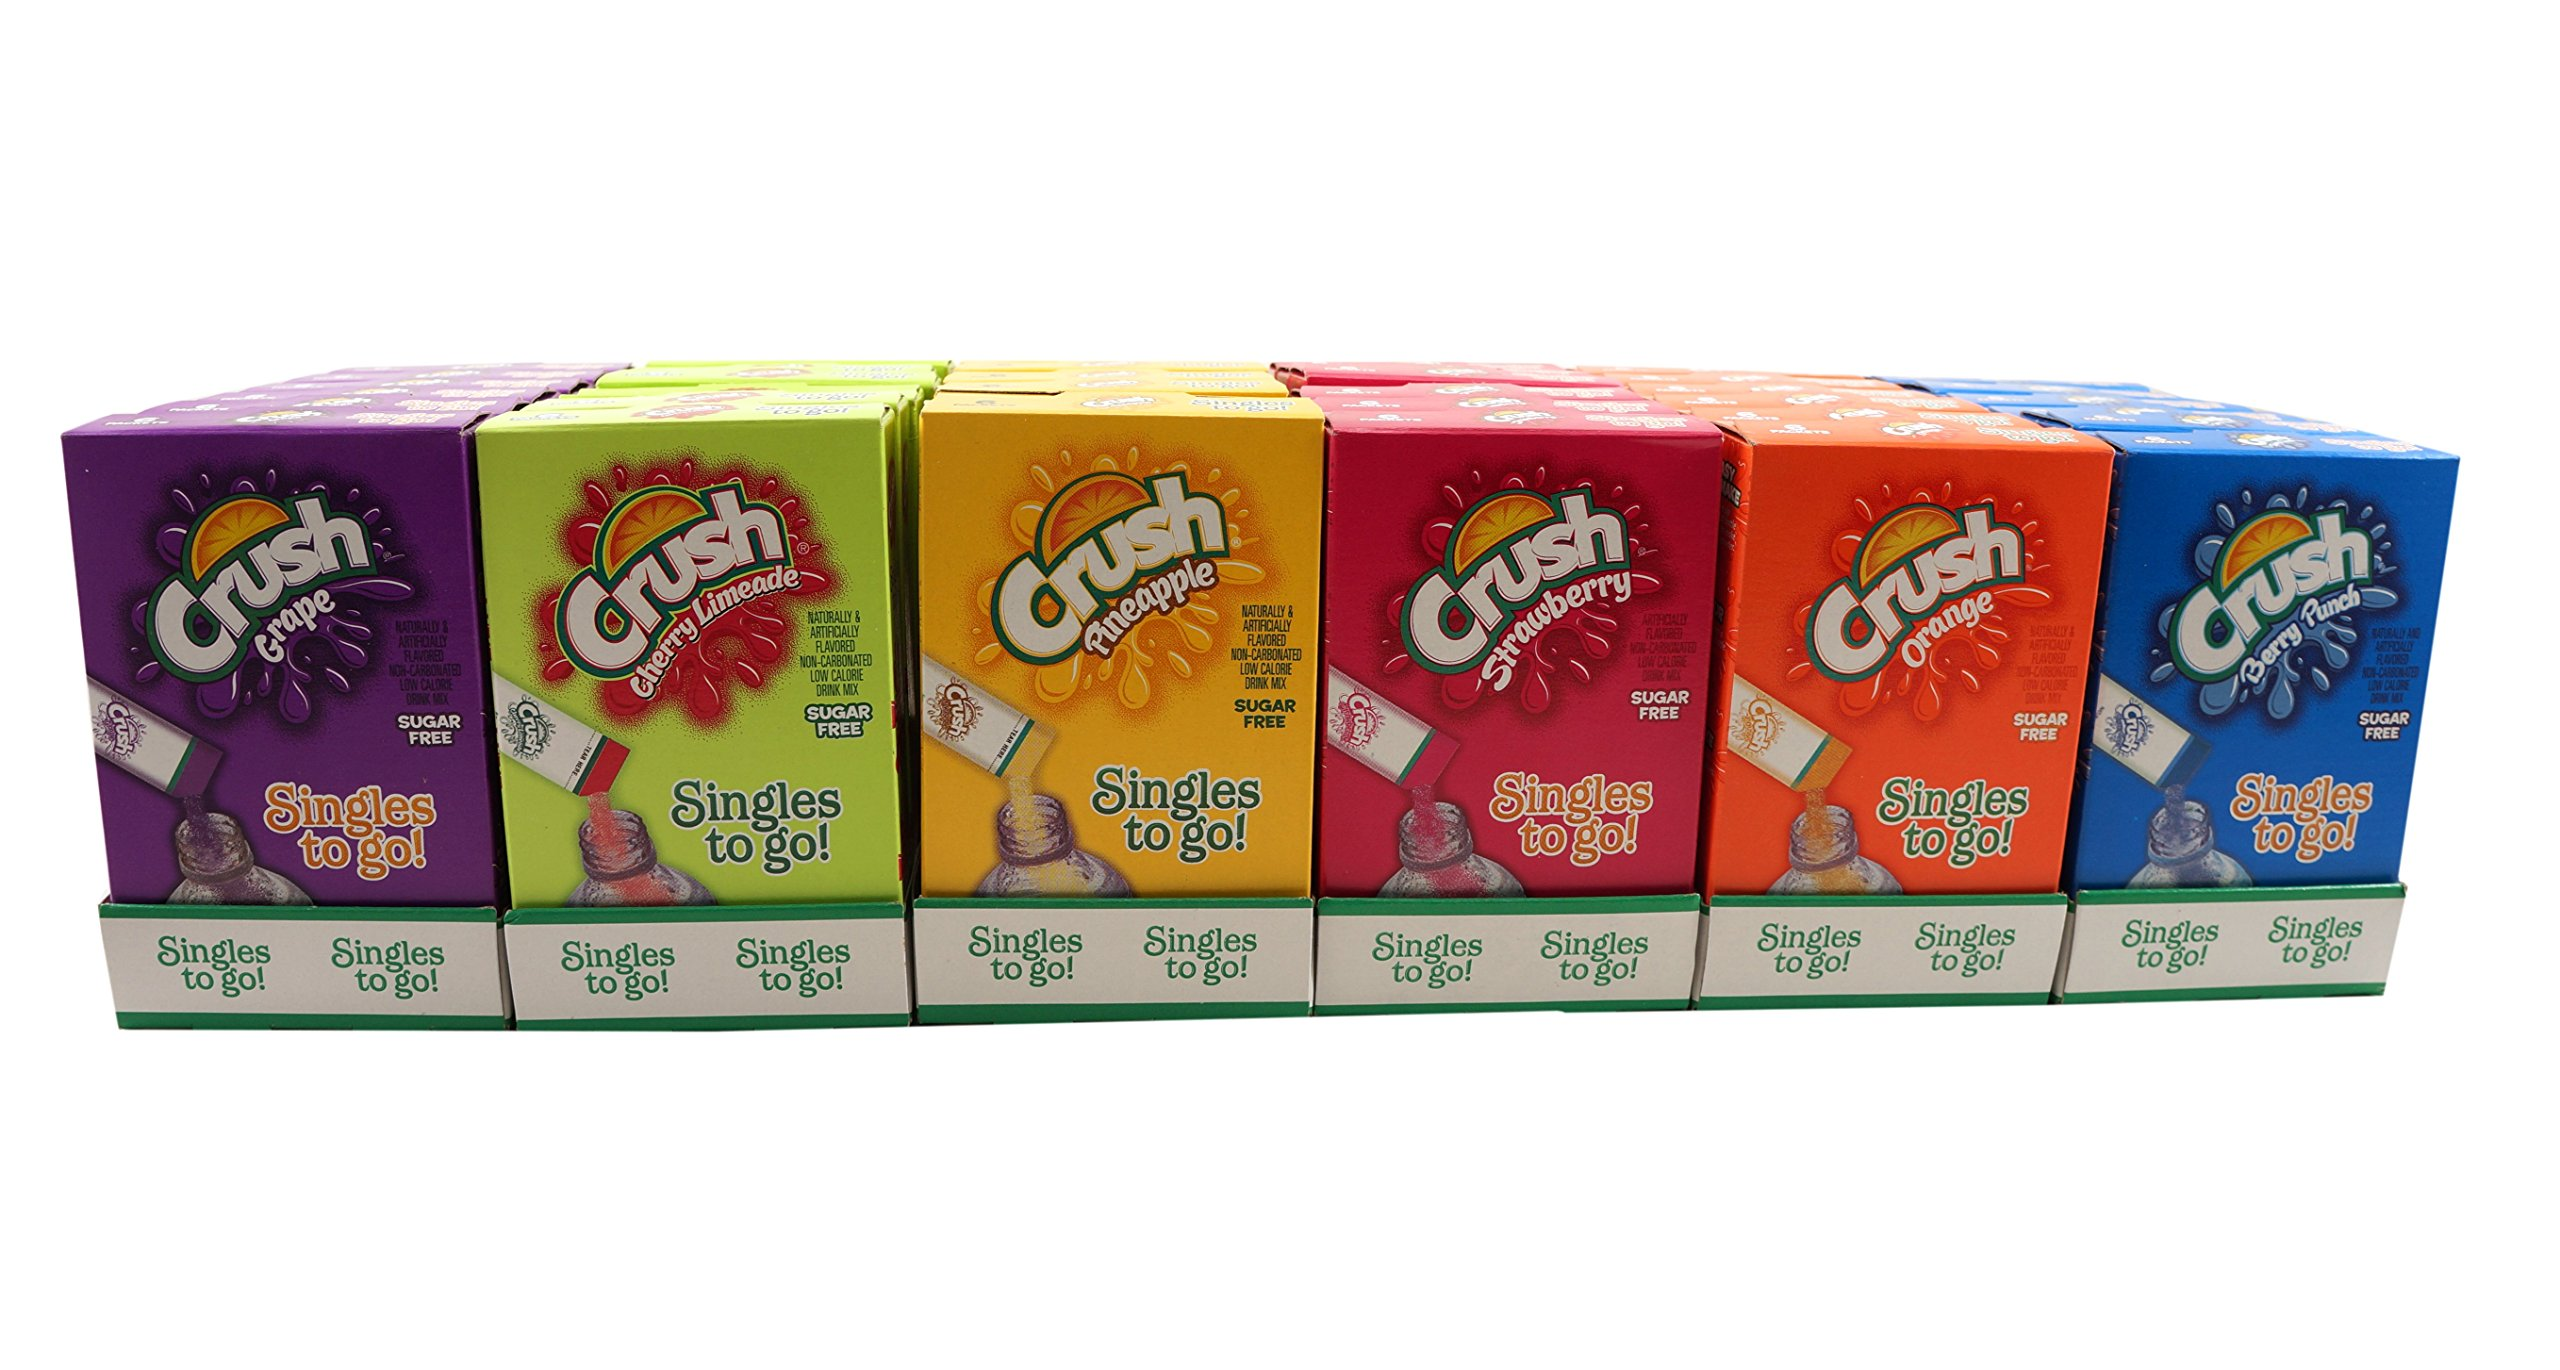 Crush Singles To Go Low Calorie Drink Mix Variety Pack